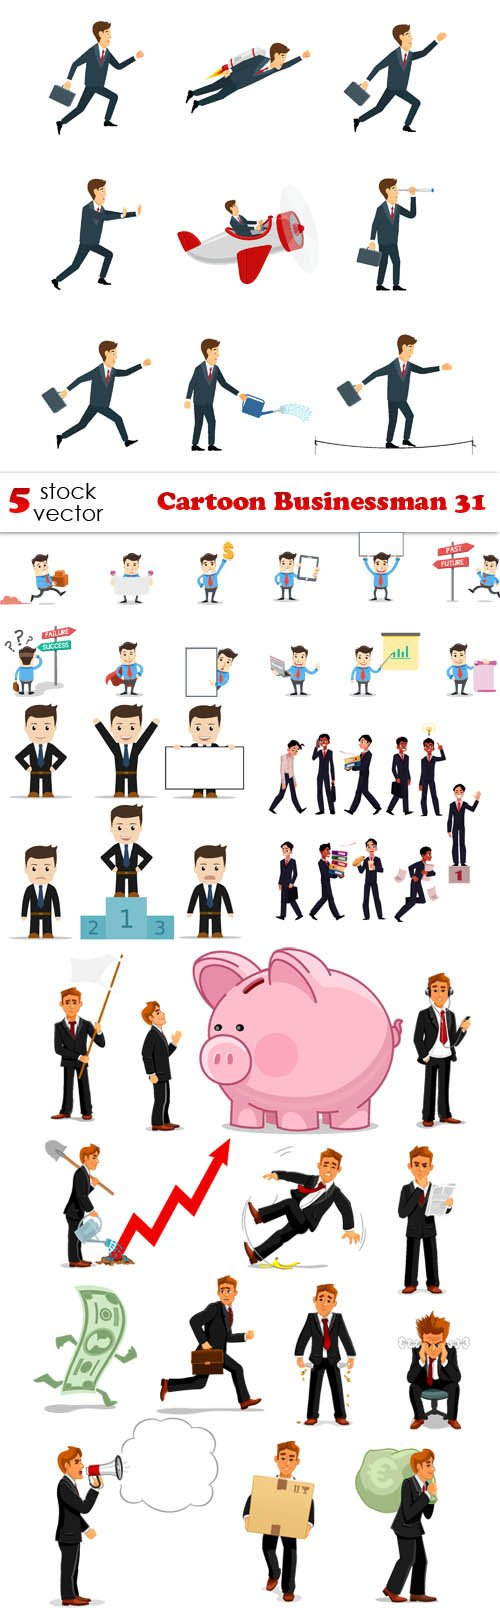 Vectors - Cartoon Businessman 31